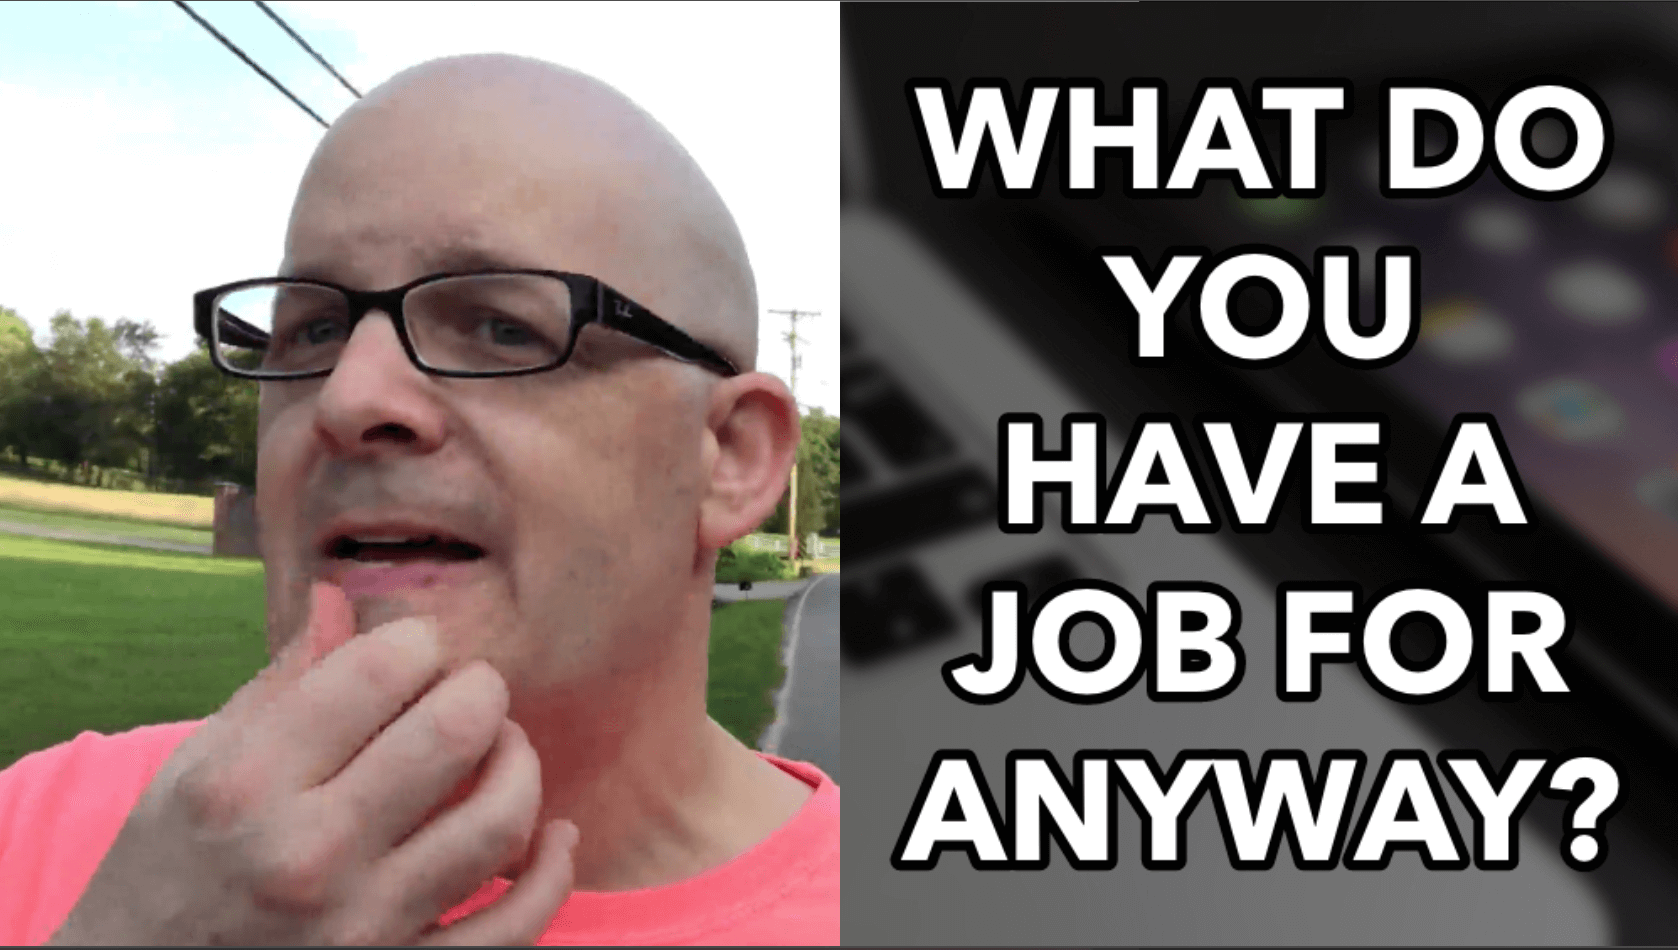 What Do You Have a Job For Anyway?